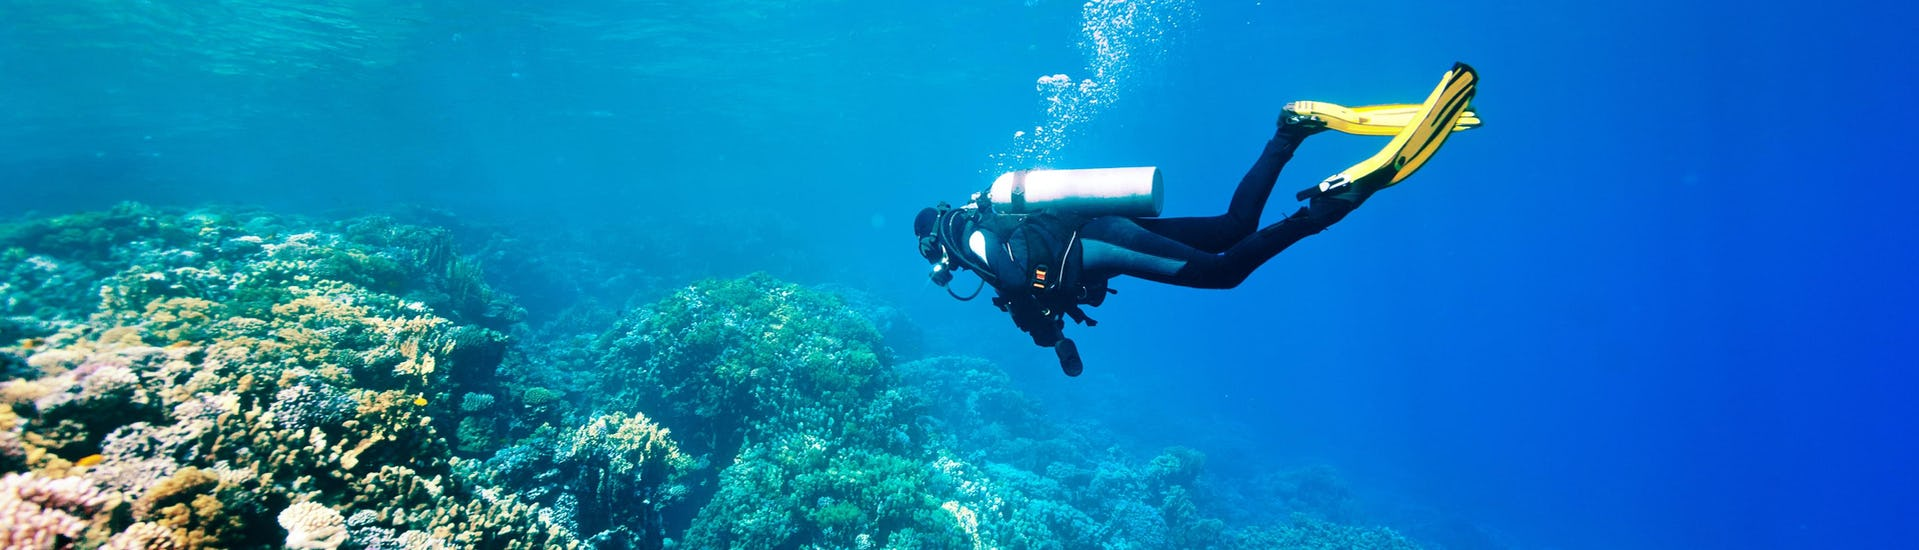 A scuba diver is exploring a reef while scuba diving in the scuba diving destination of Cassis.